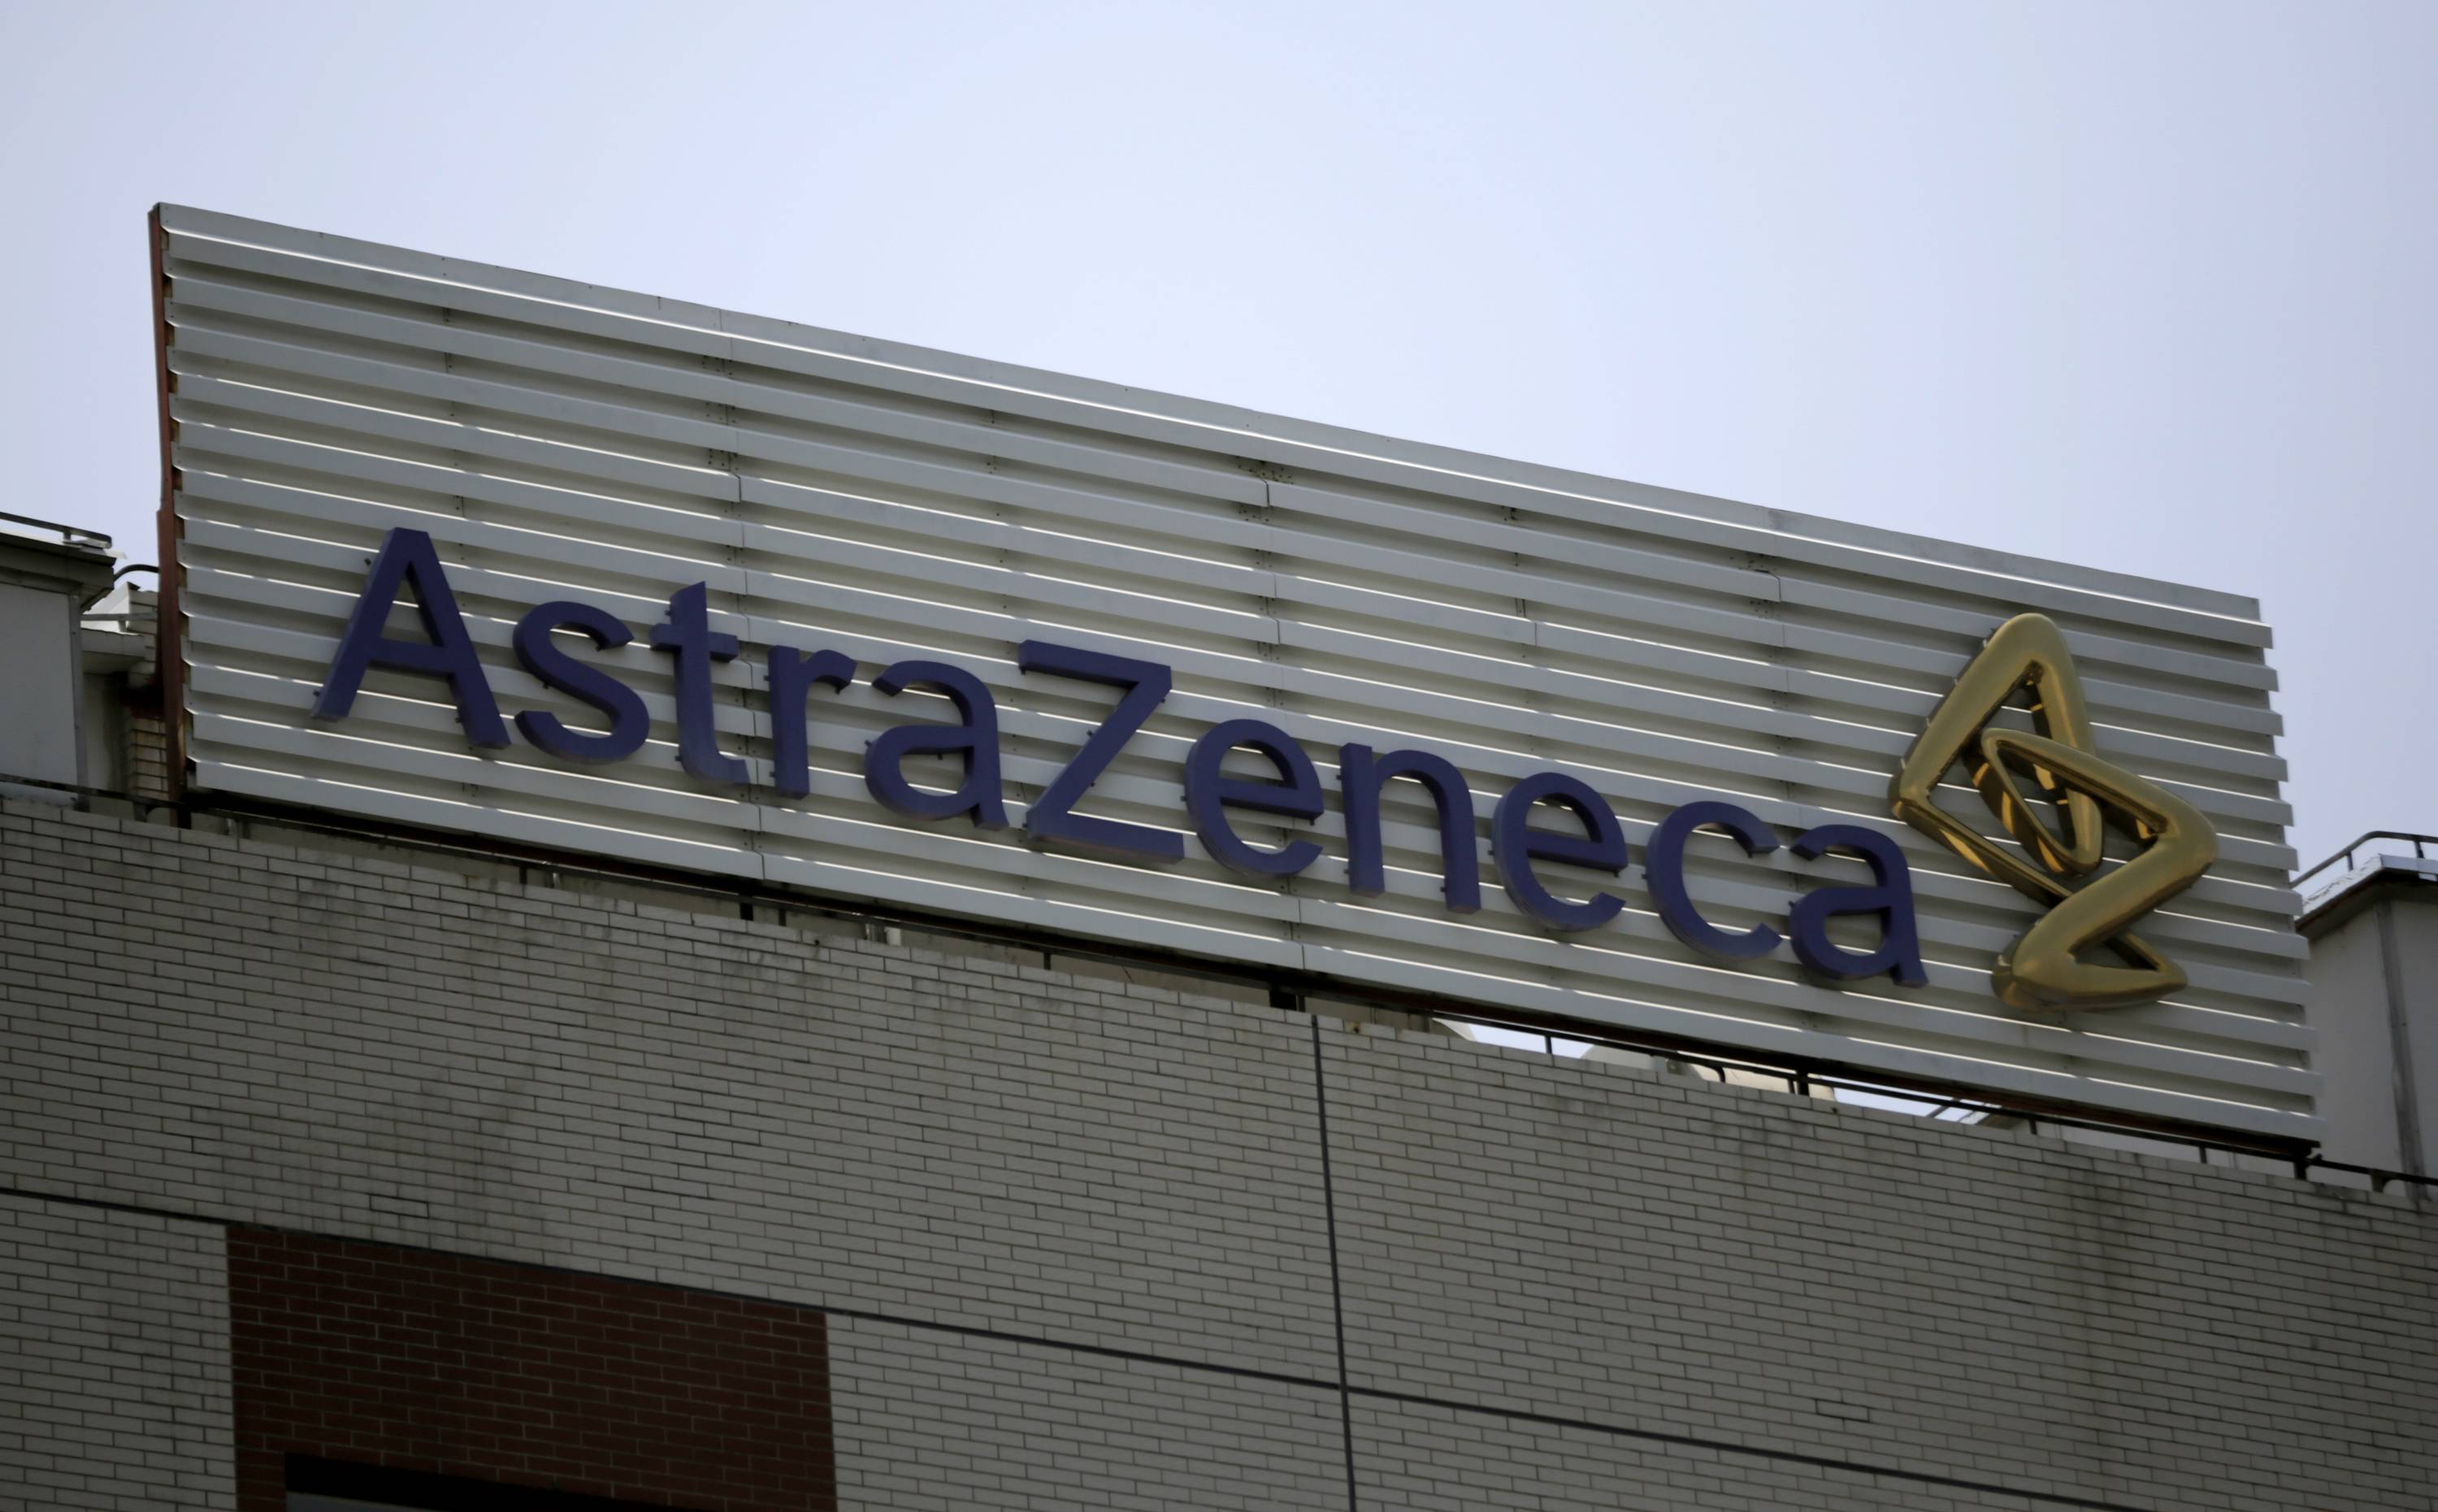 This July 24, 2013 file photo shows the AstraZeneca logo on the company's building in Shanghai, China. Pfizer says it does not intend to make a takeover offer for British drugmaker AstraZeneca. The Monday, May 26, 2014 announcement comes a week after AstraZeneca's board rejected a proposed $119 billion buyout offer from Pfizer, the world's second-biggest drugmaker by revenue.